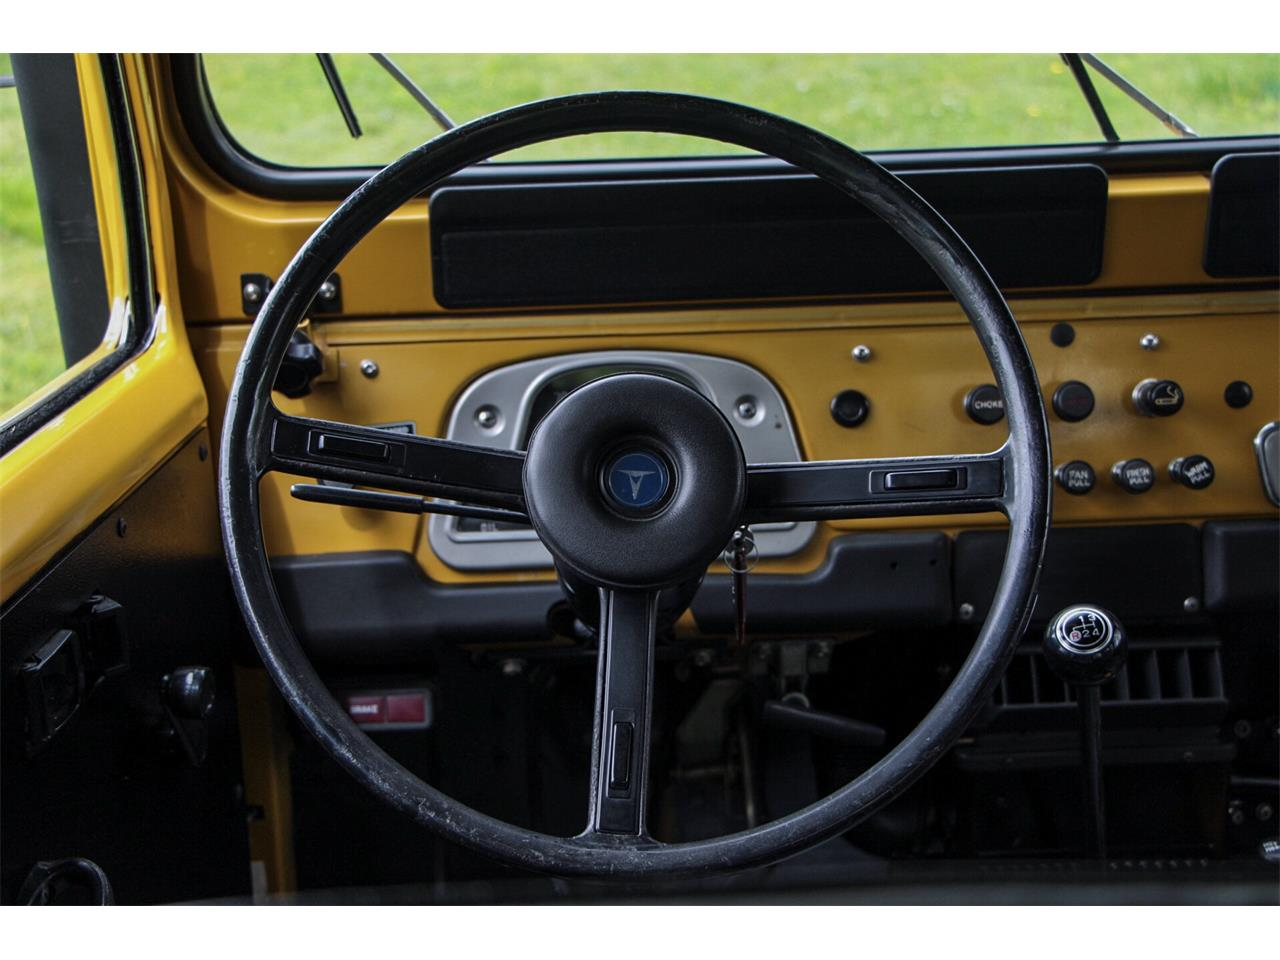 Large Picture of 1977 Toyota Land Cruiser FJ40 located in Georgia - $55,000.00 Offered by Classic AutoSmith - PW6P